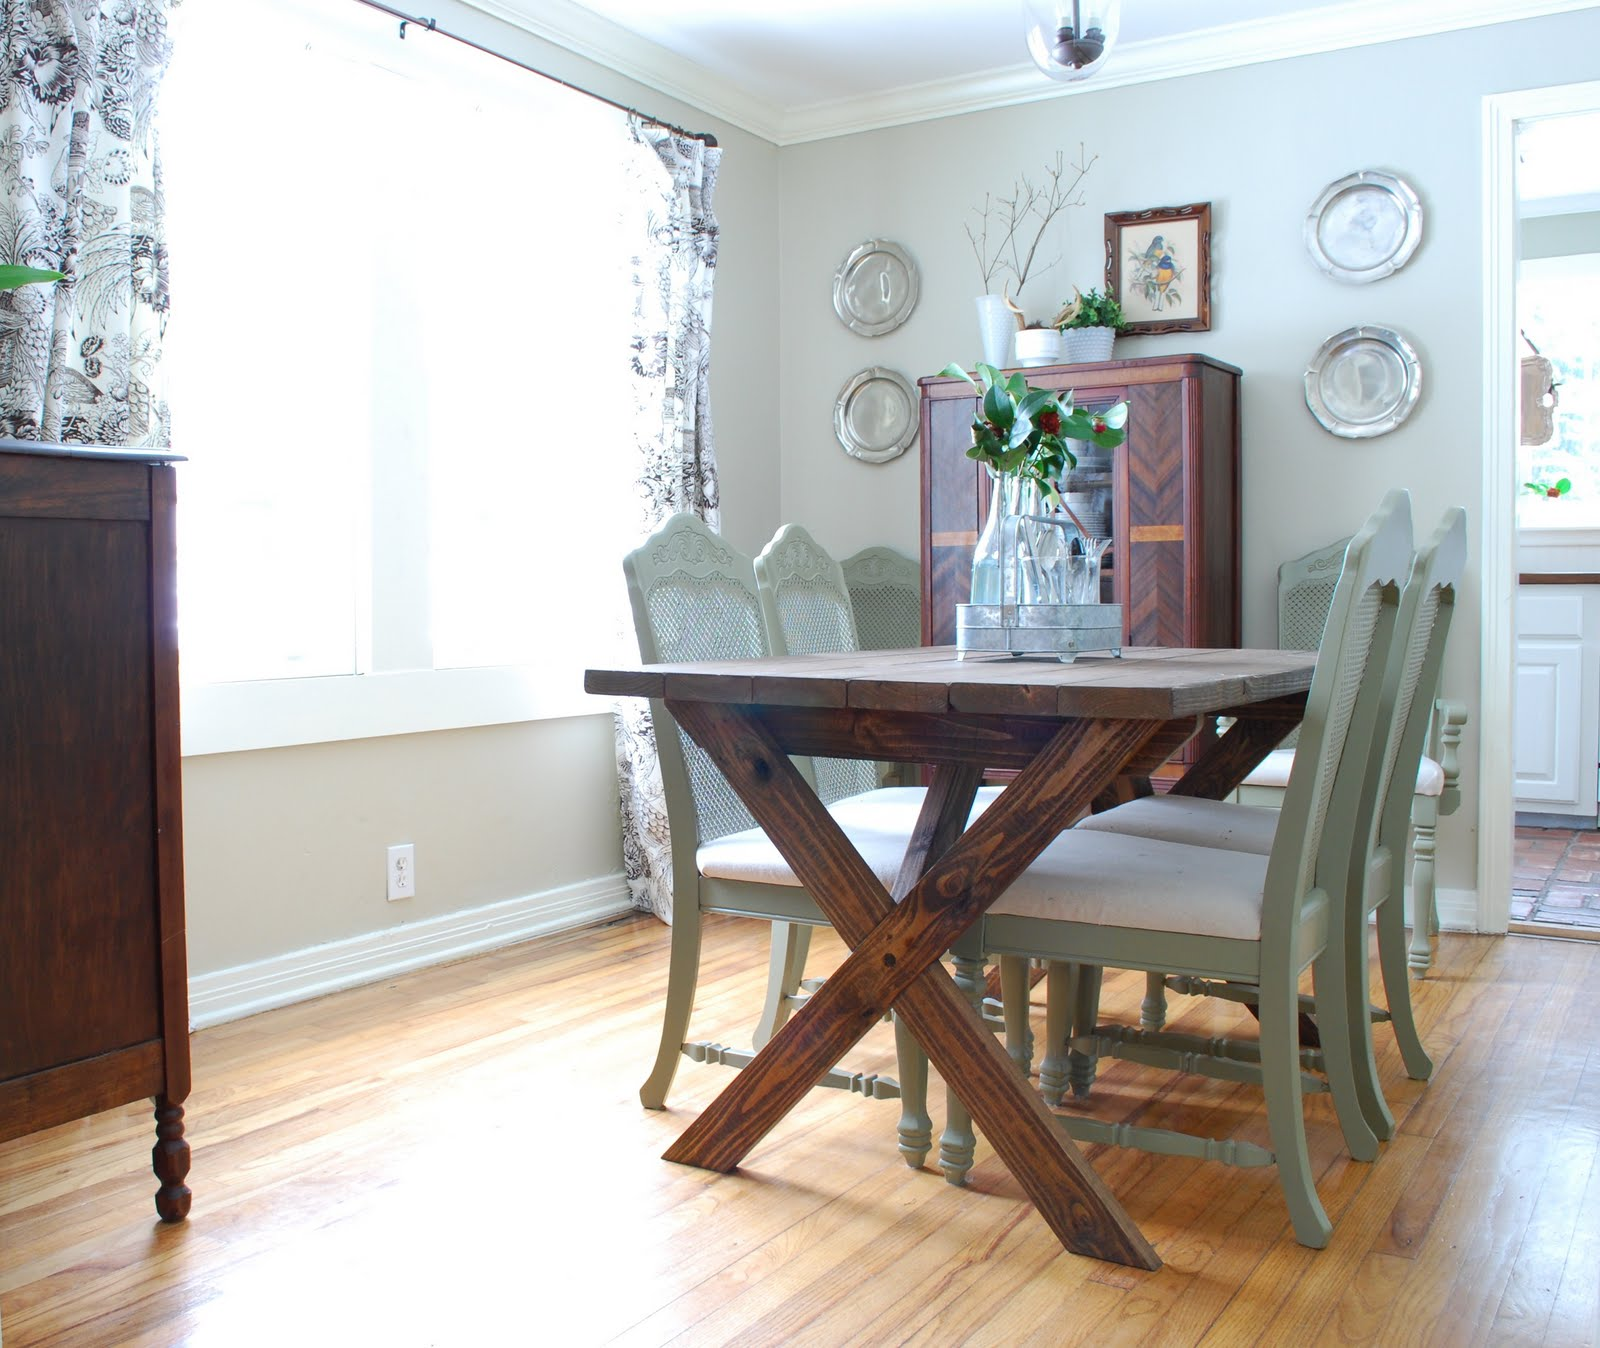 Ana White Dining Room Table: Vanessa's X Picnic Table - DIY Projects